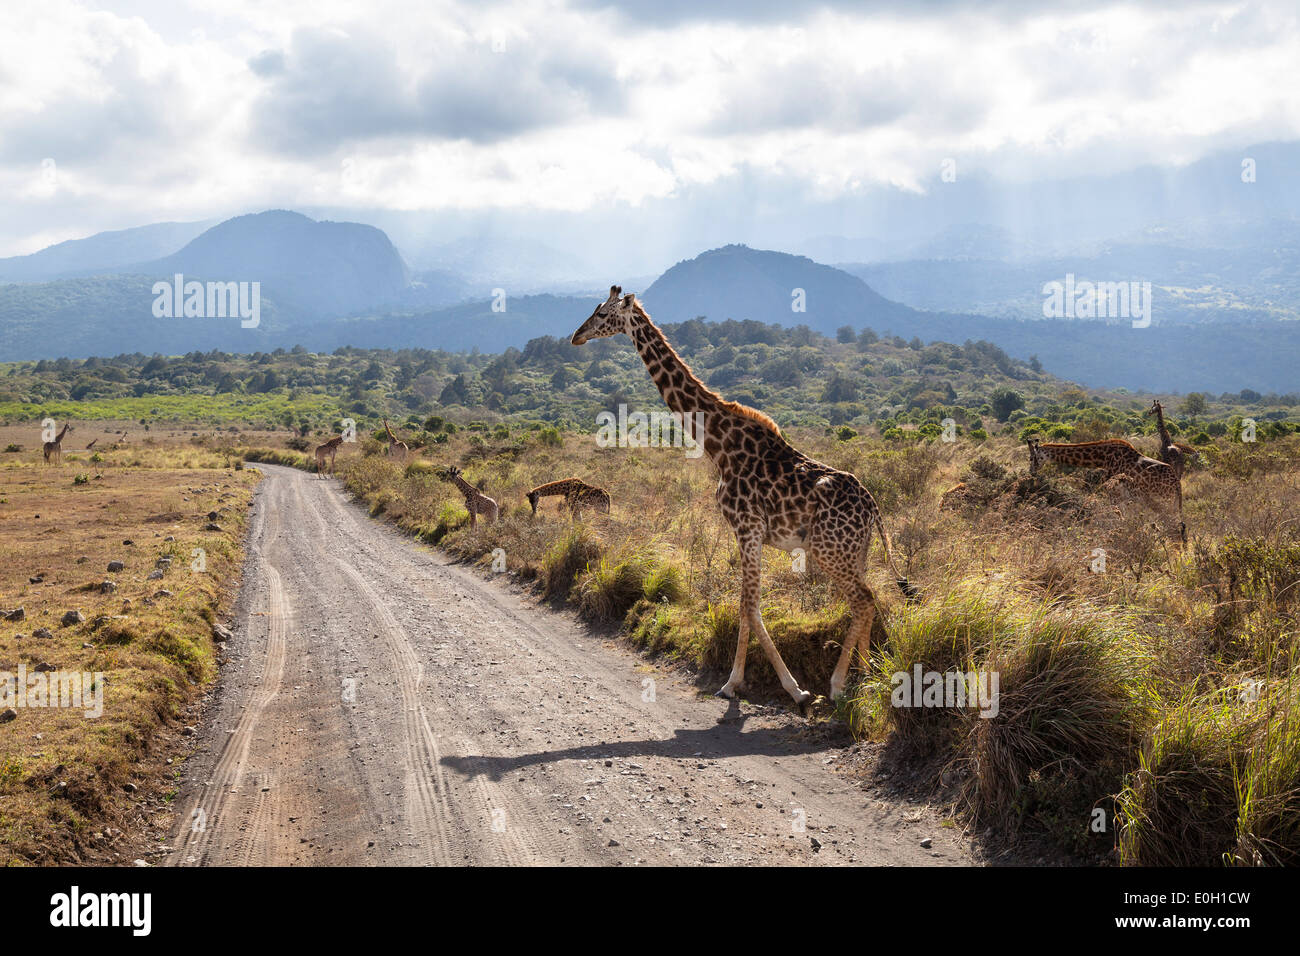 Massai Giraffe crossing the road, Giraffa camelopardalis, Mount Meru, Arusha National Park, Tanzania, East Africa, - Stock Image